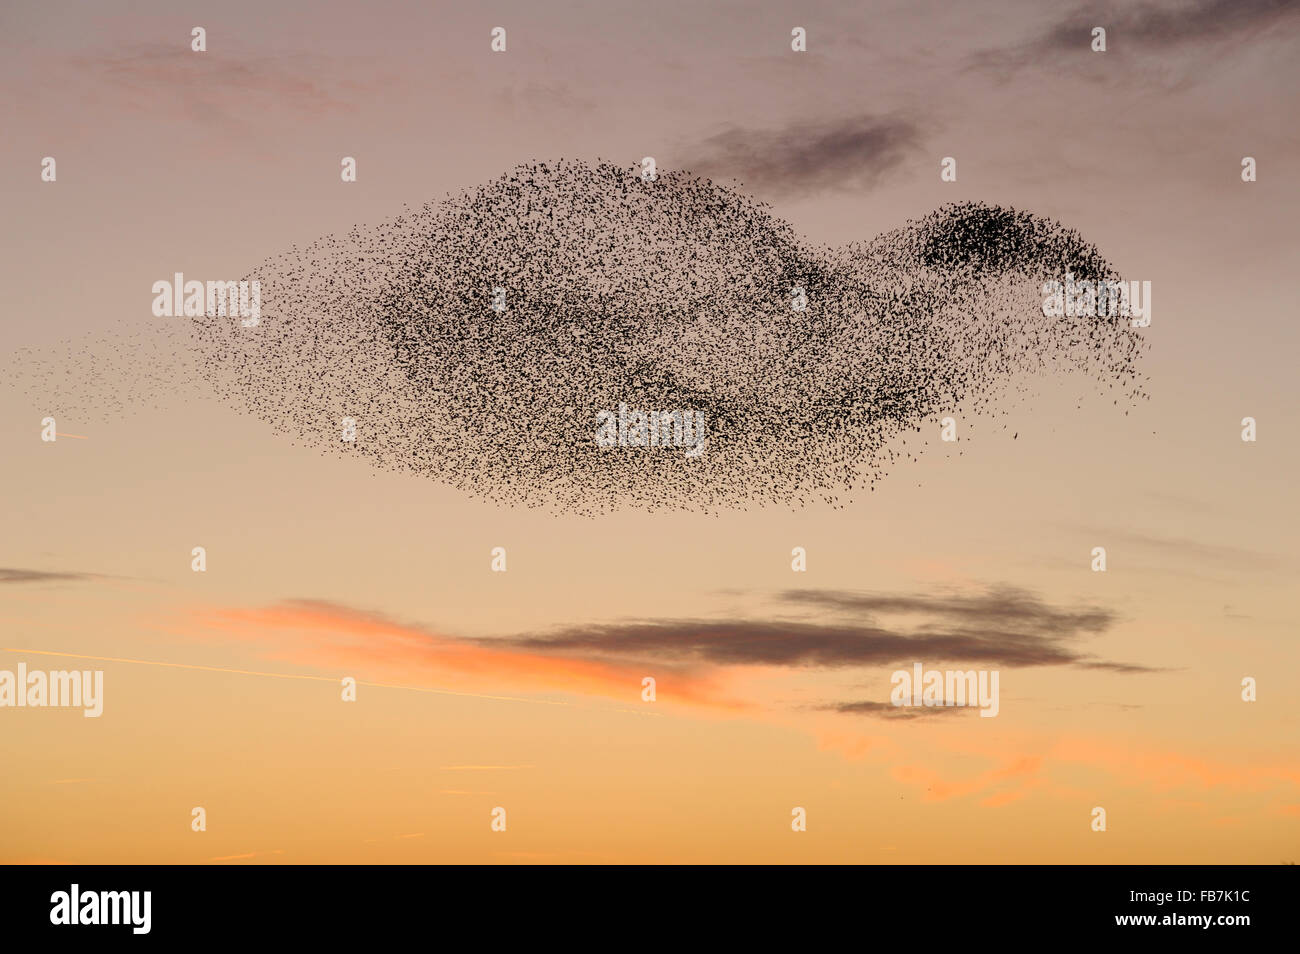 Starling flock (Sturnus vulgaris) at sunset, with peregrine falcon (Falco peregrinus) flying close to the flock. - Stock Image